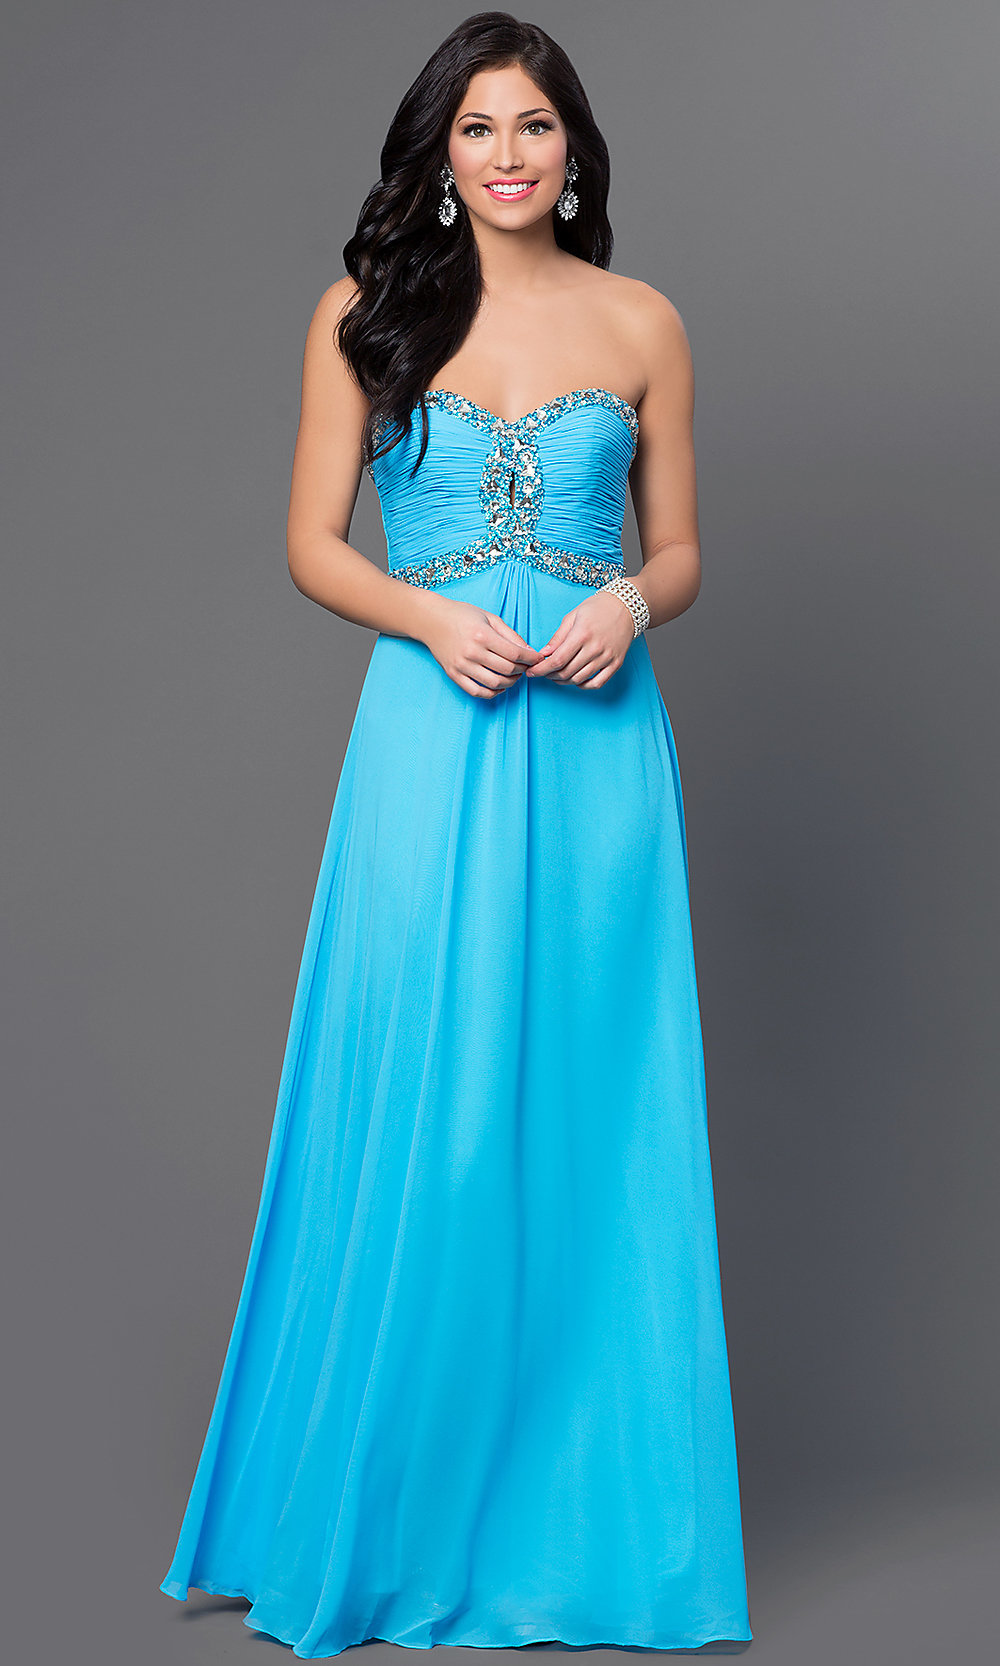 Fantastic Resell Prom Dresses Picture Collection - All Wedding ...